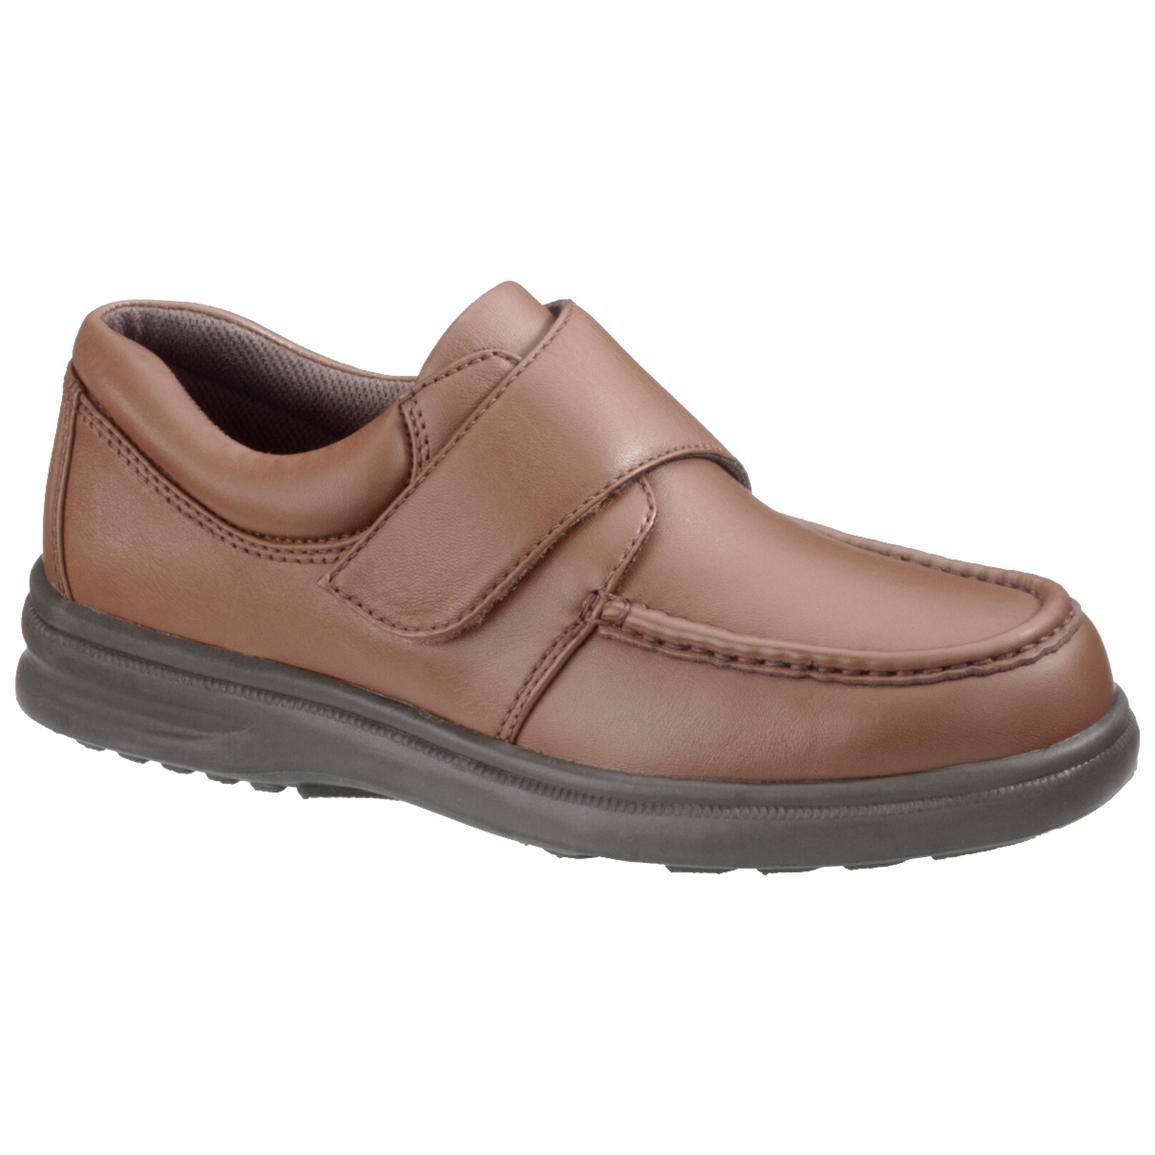 Men's Hush Puppies® Gil Shoes, Tan